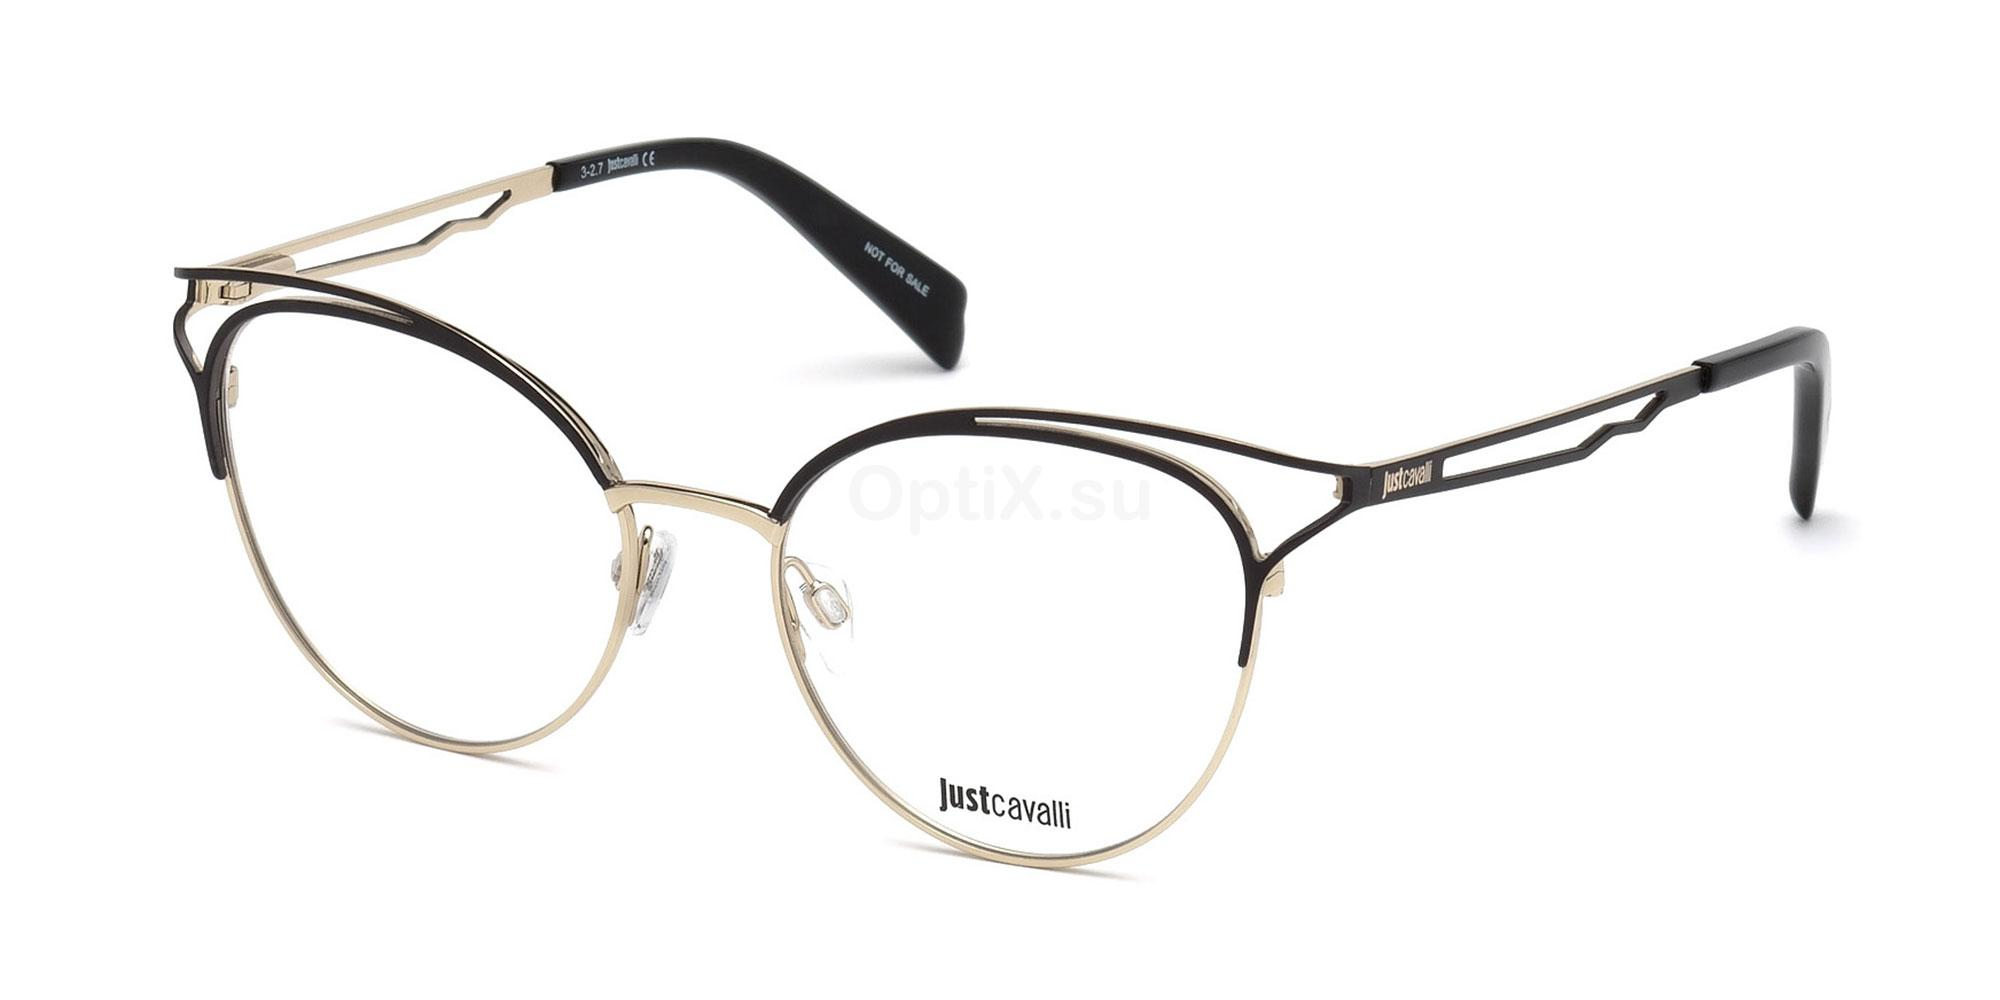 005 JC0860 Glasses, Just Cavalli